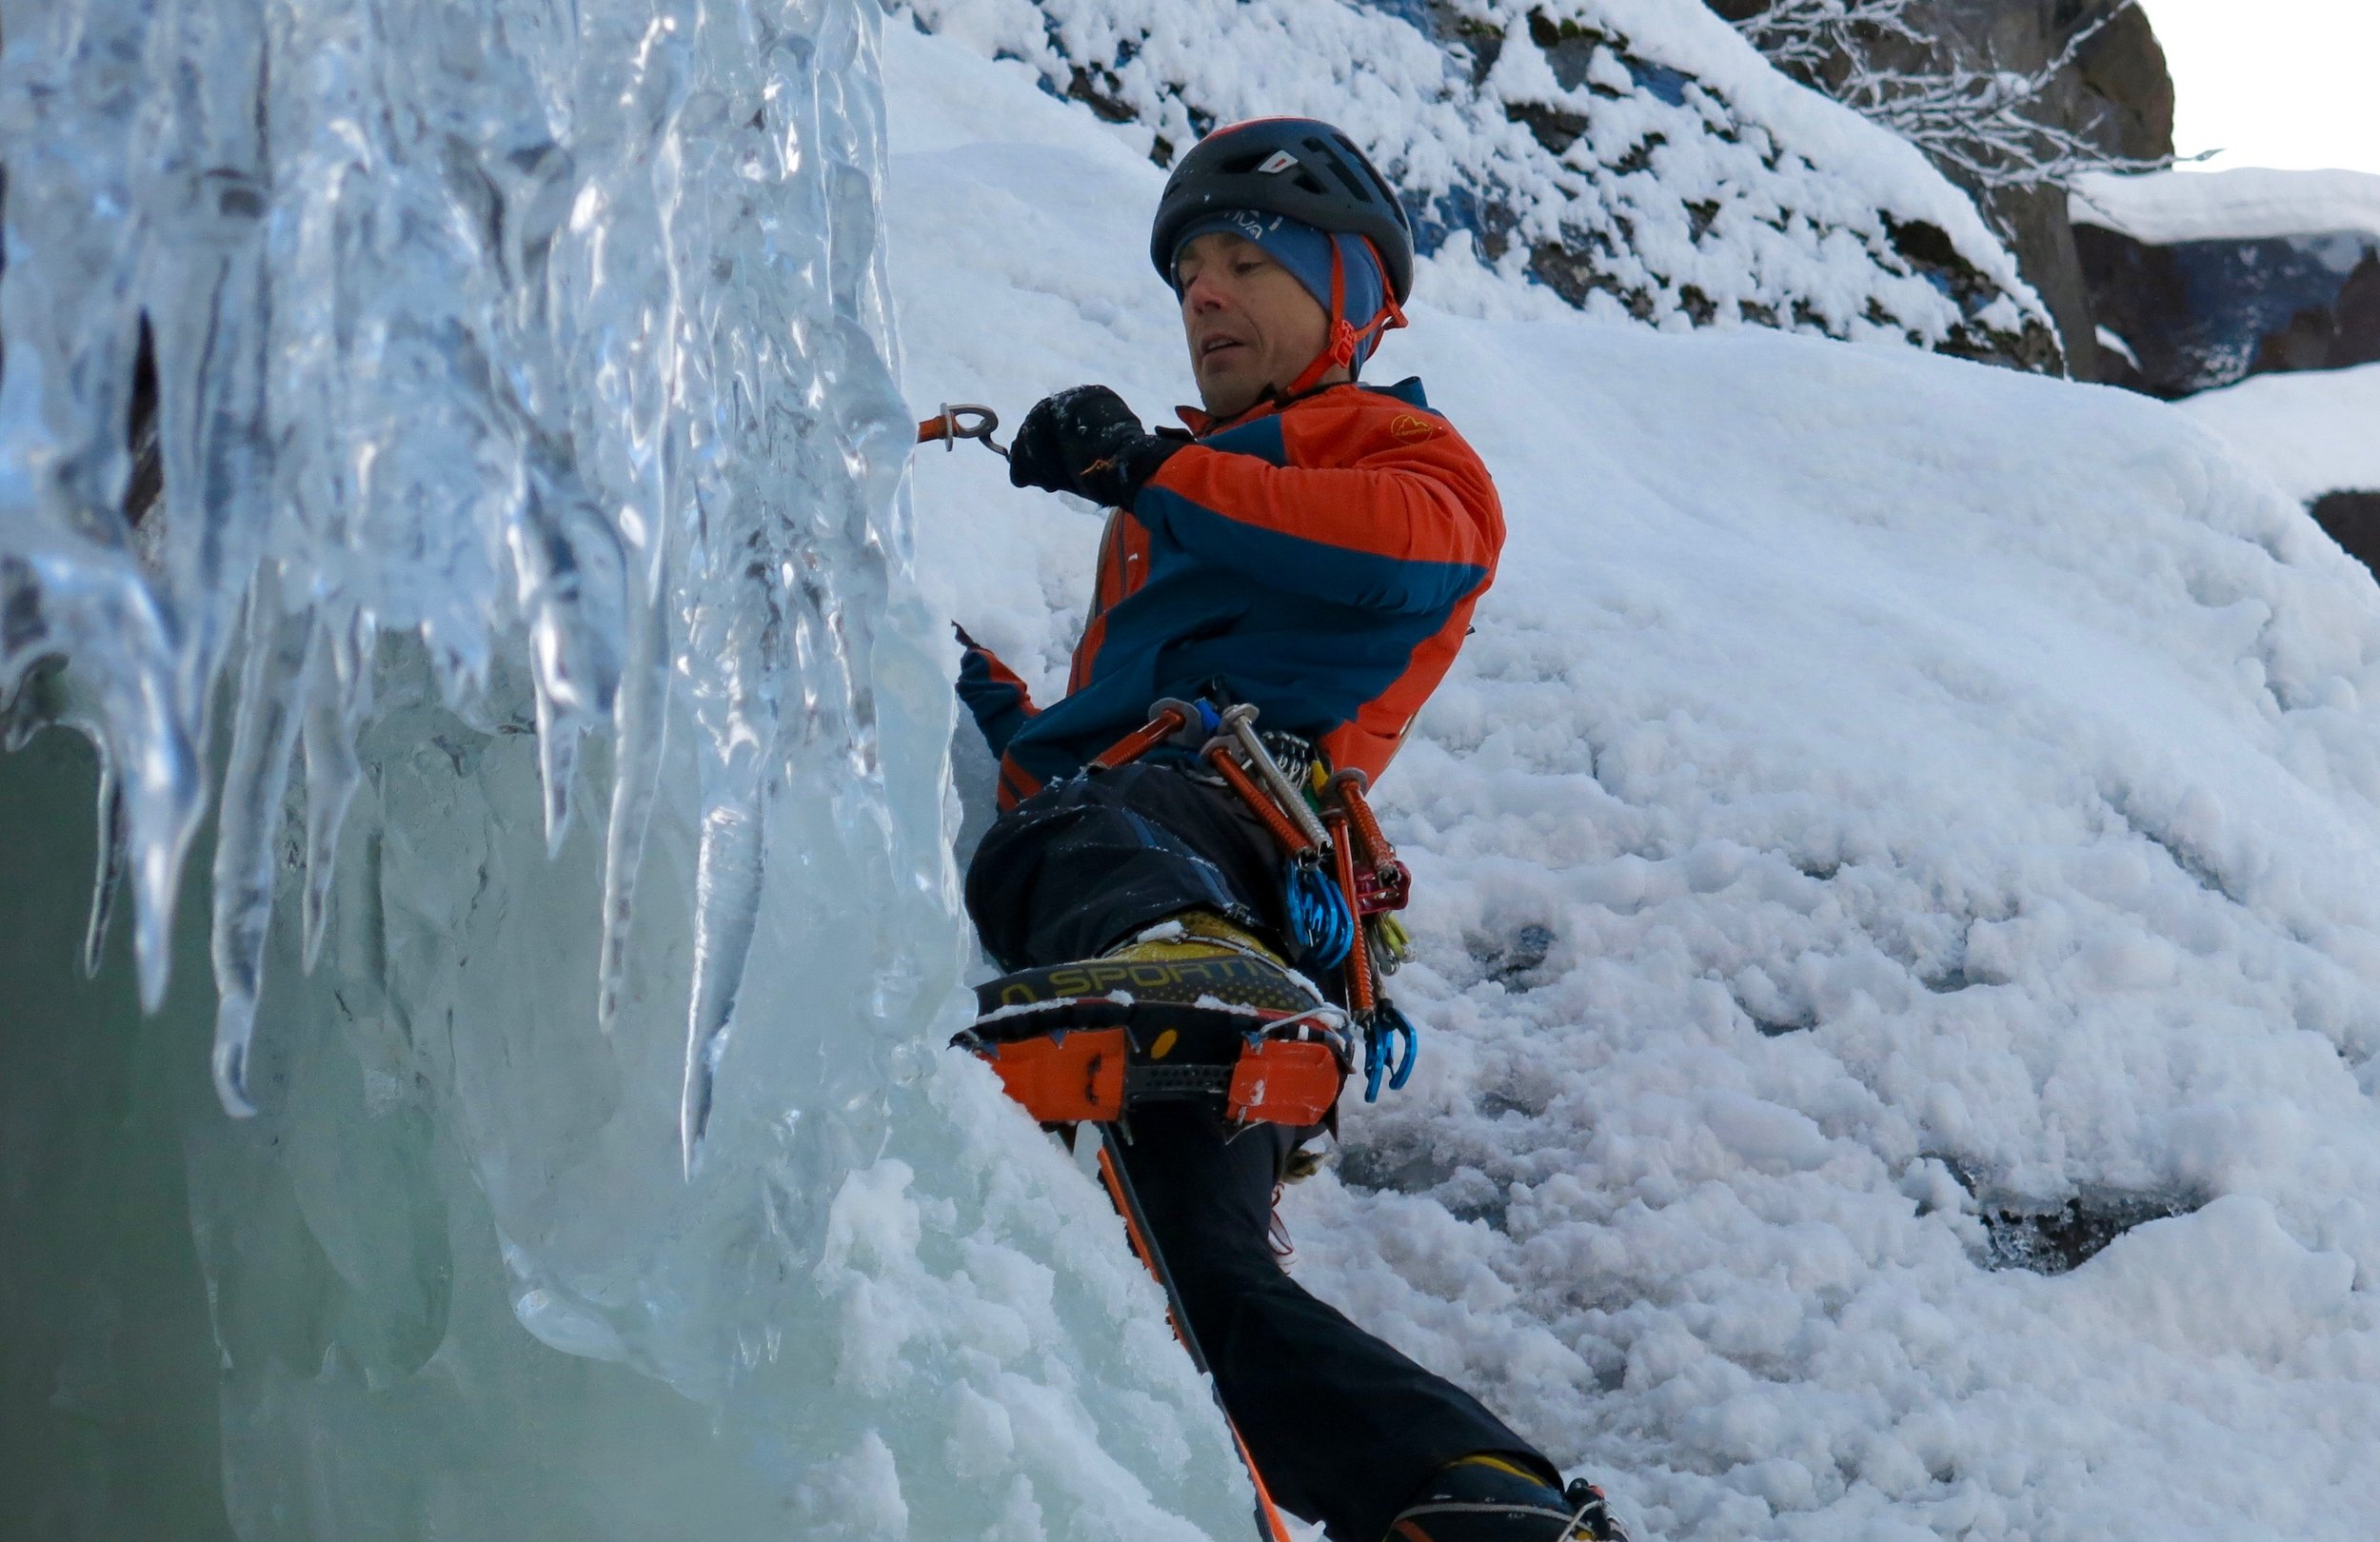 Using the Laser Speed ice screw in Rjukan, Norway. Photo: Gerard Smith